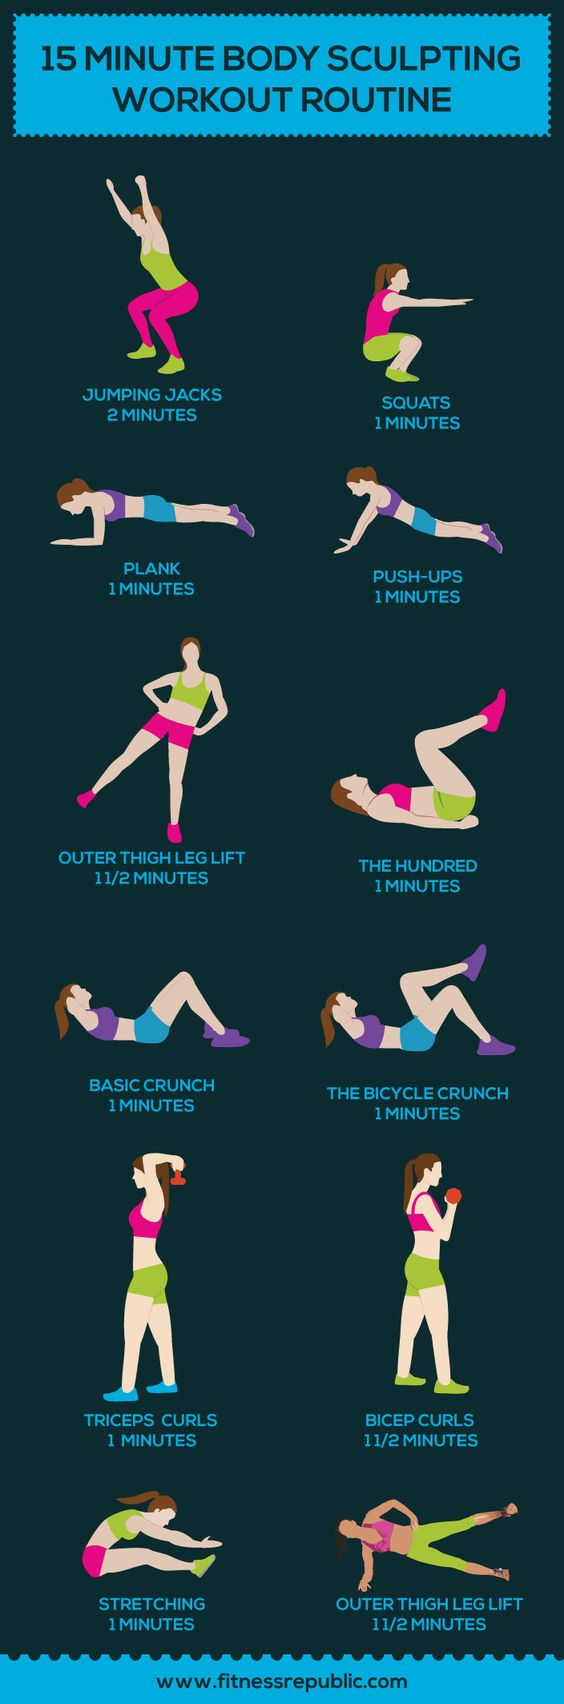 15 Minute Body Sculpting Workout Routine